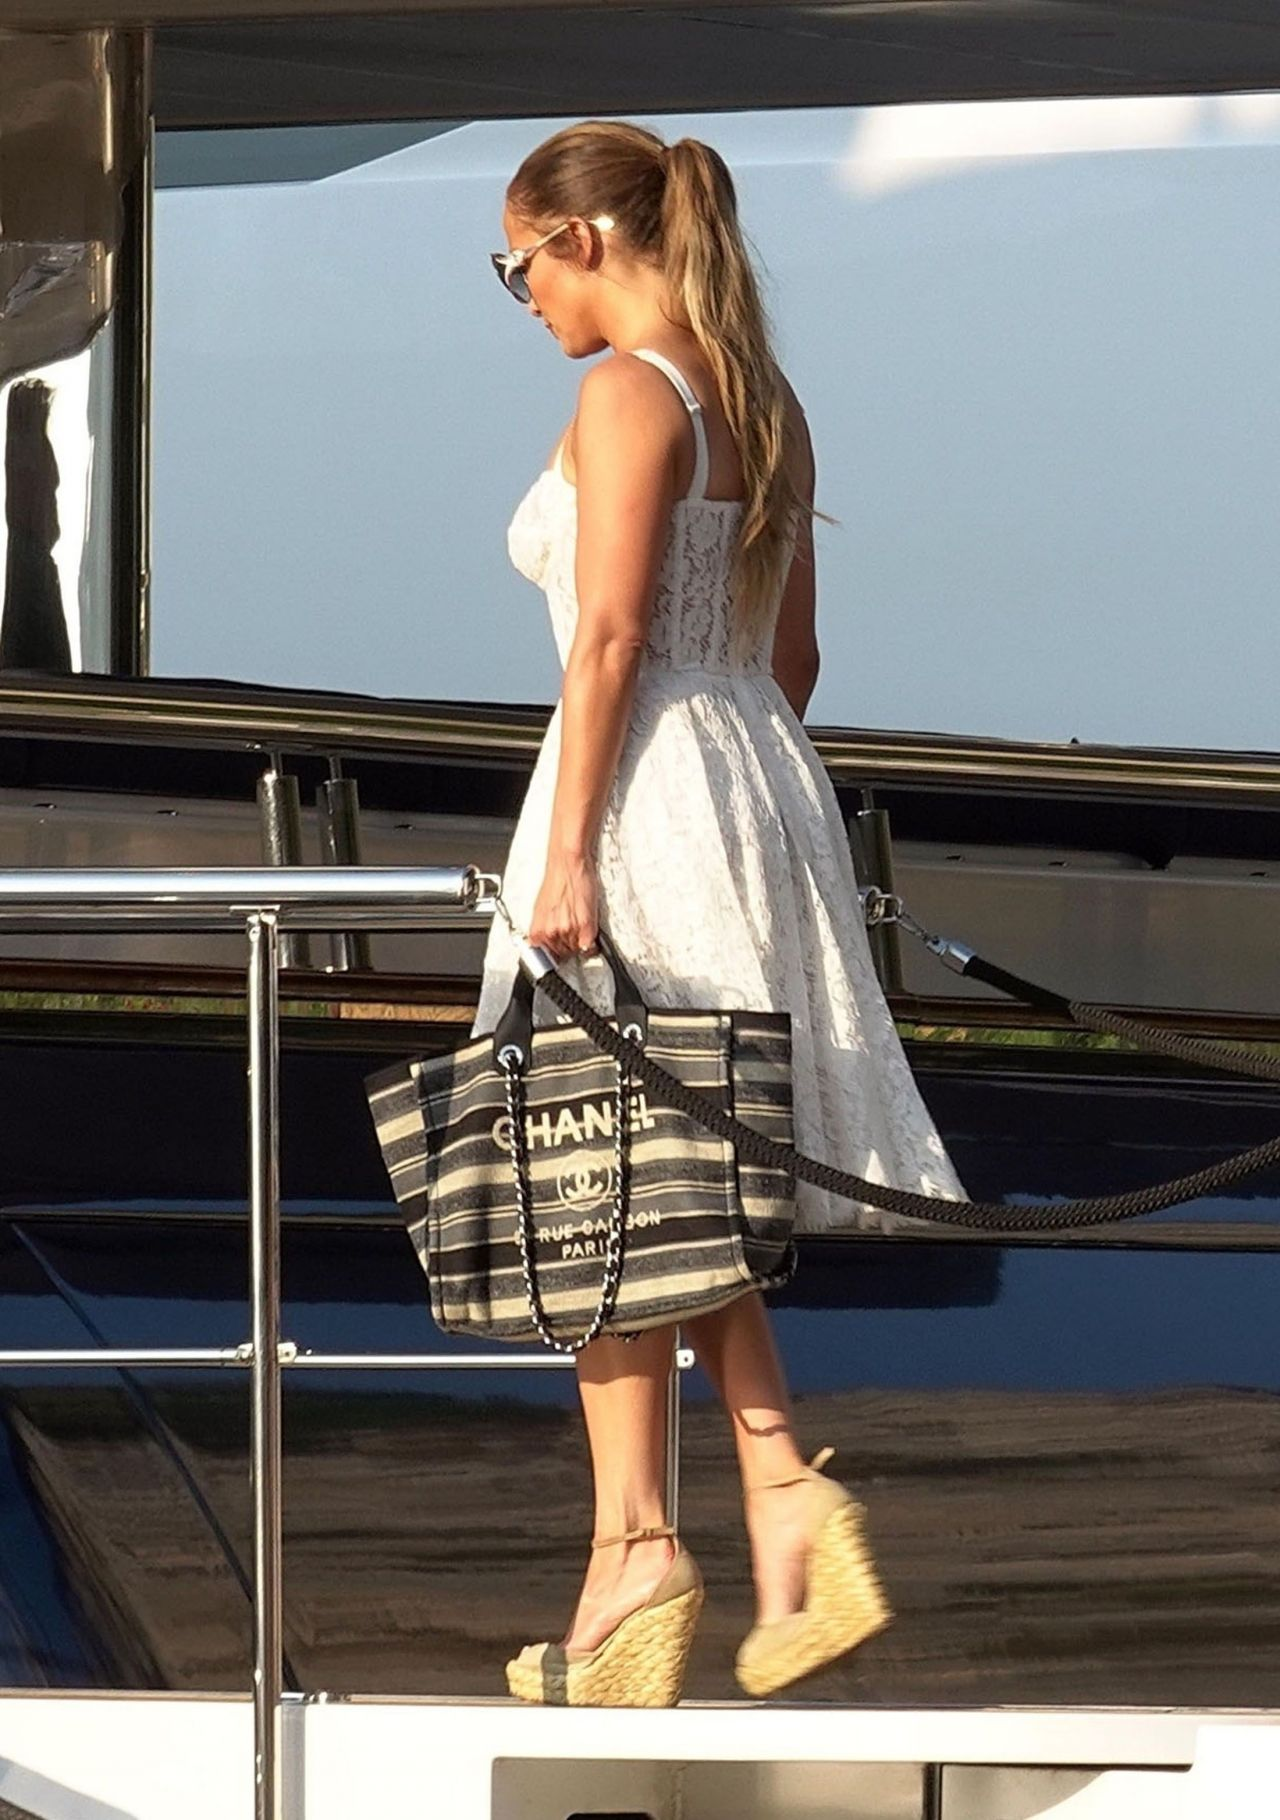 jennifer-lopez-and-alex-rodriguez-on-their-luxury-yacht-in-capri-08-07-2018-3.jpg